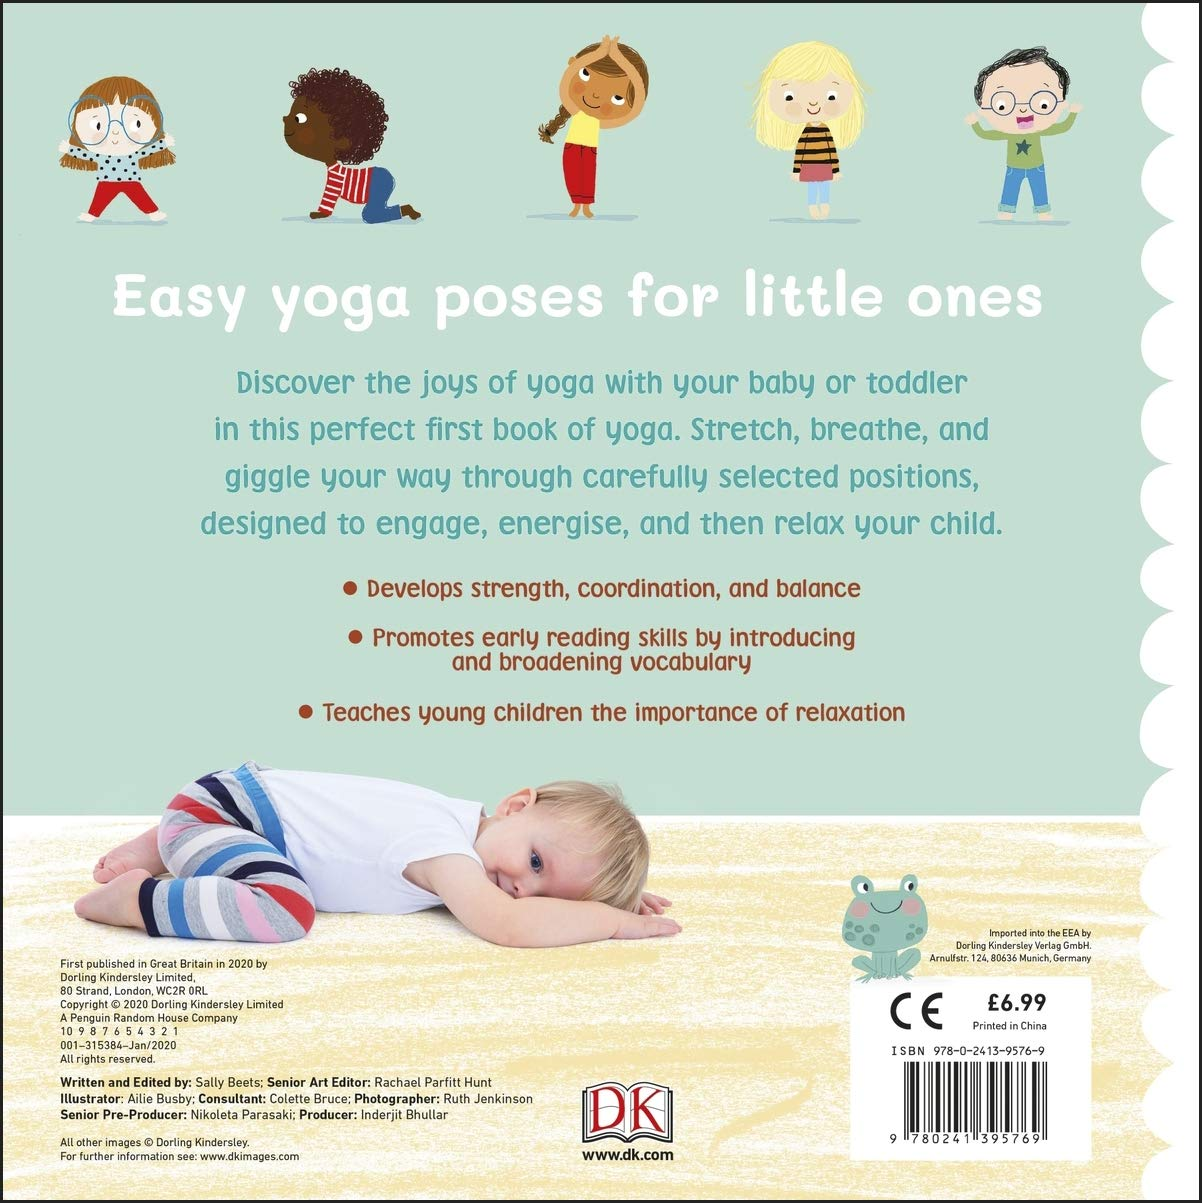 My First Yoga Fun And Simple Yoga Poses For Babies And Toddlers Dk 9780241395769 Amazon Com Books